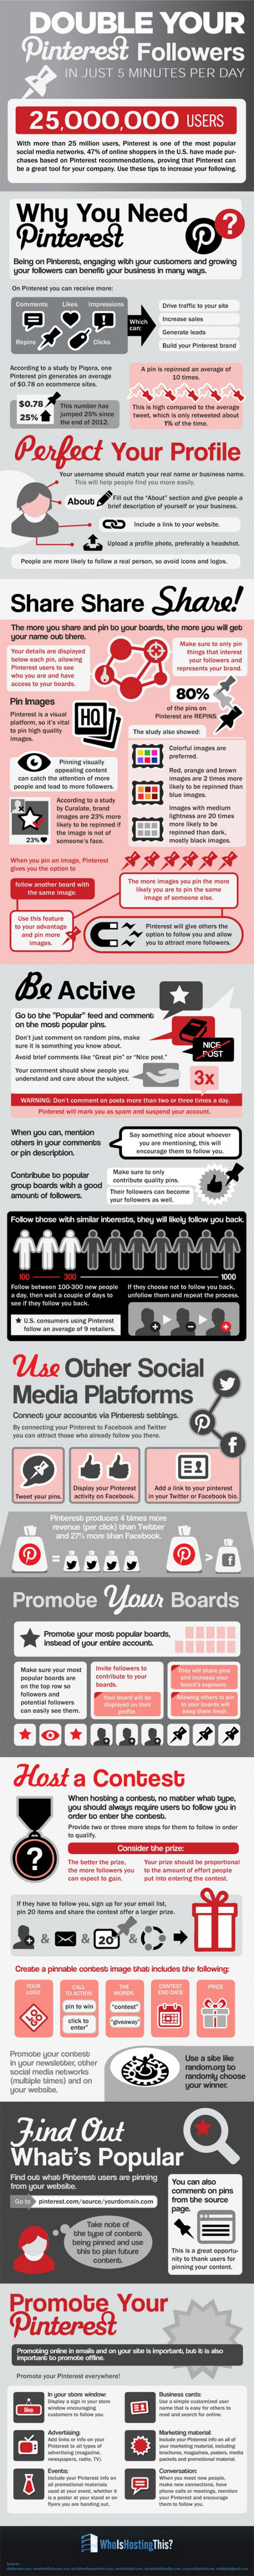 How You Can Get More Pinterest Followers (Infographic) | Anything Mobile | Scoop.it